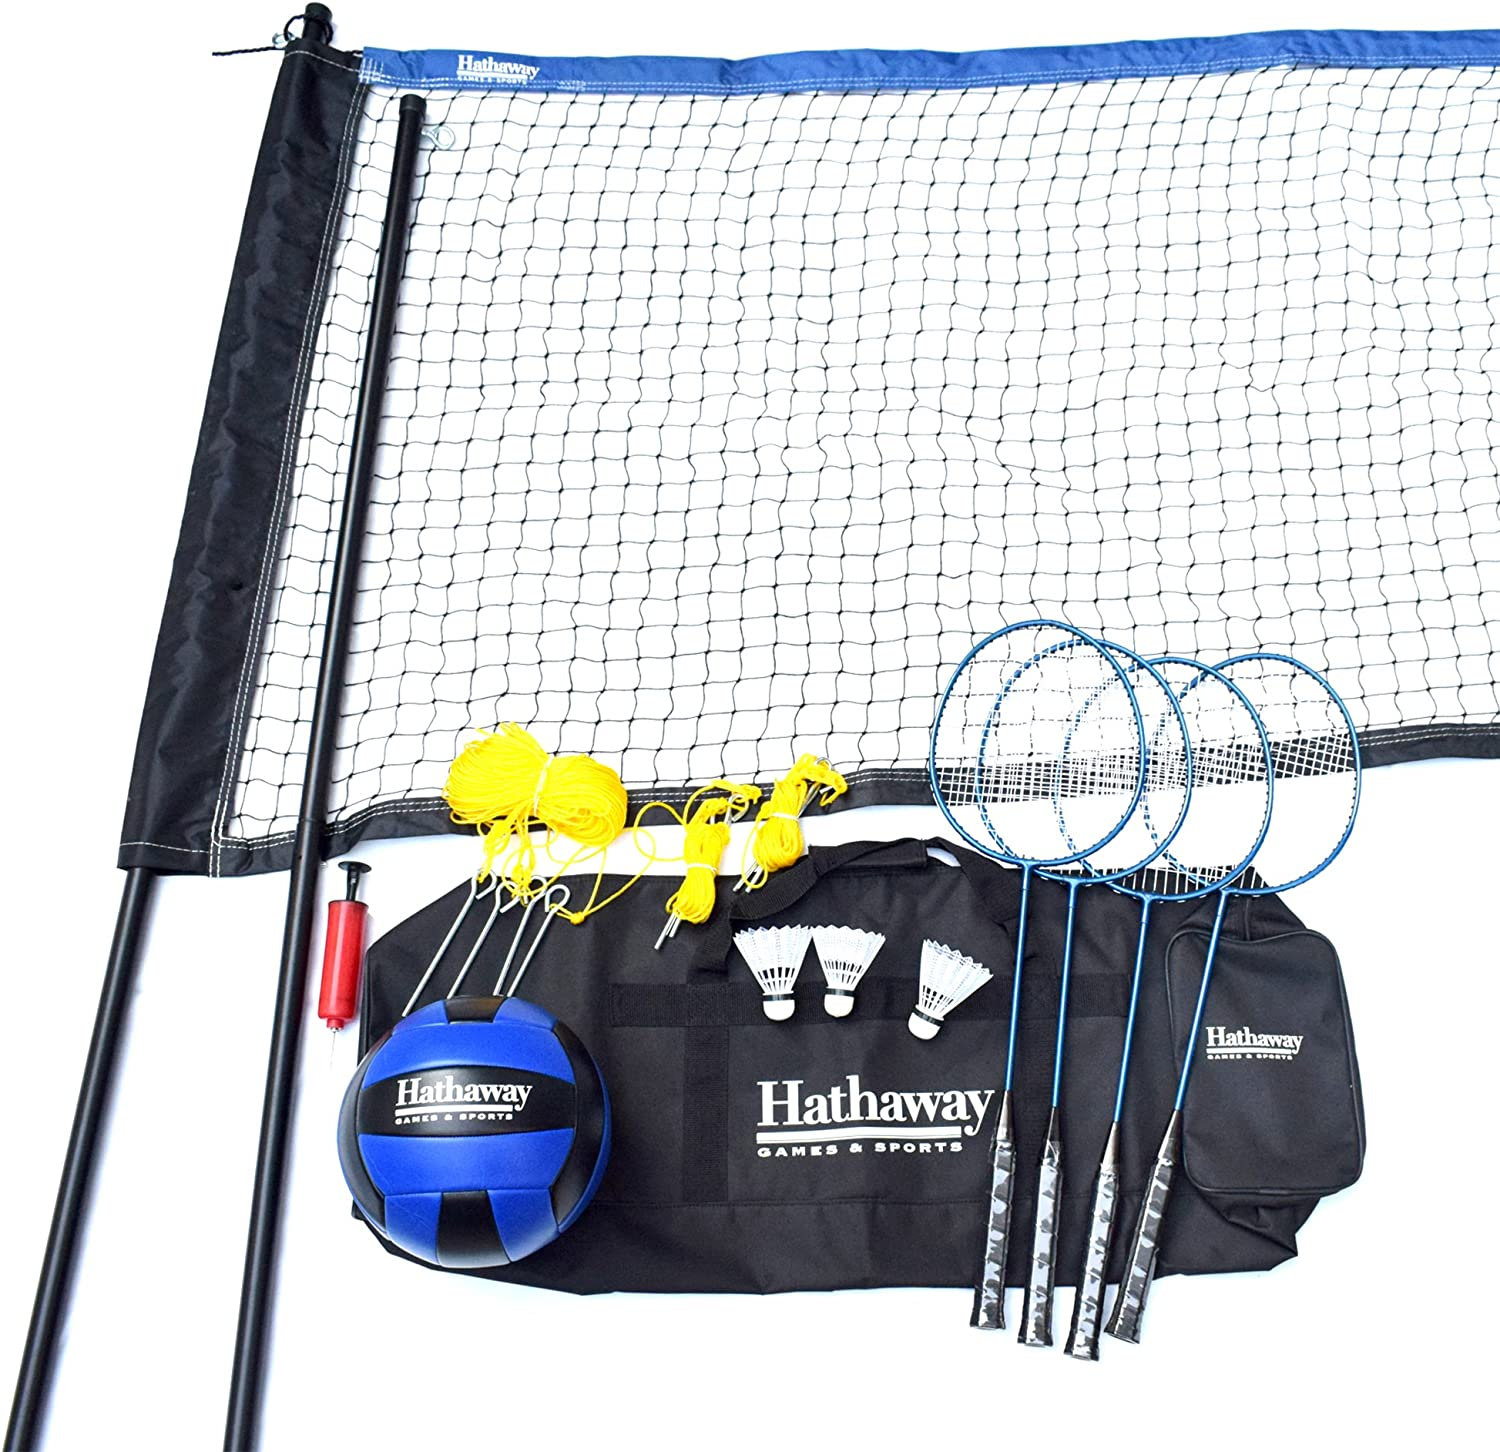 397a2b99c6 Hathaway Volleyball Complete Combo Set BG3141, White, Net 32' x 3'; 1.5  diam Steel Poles Badminton nwutec3074-Sporting goods